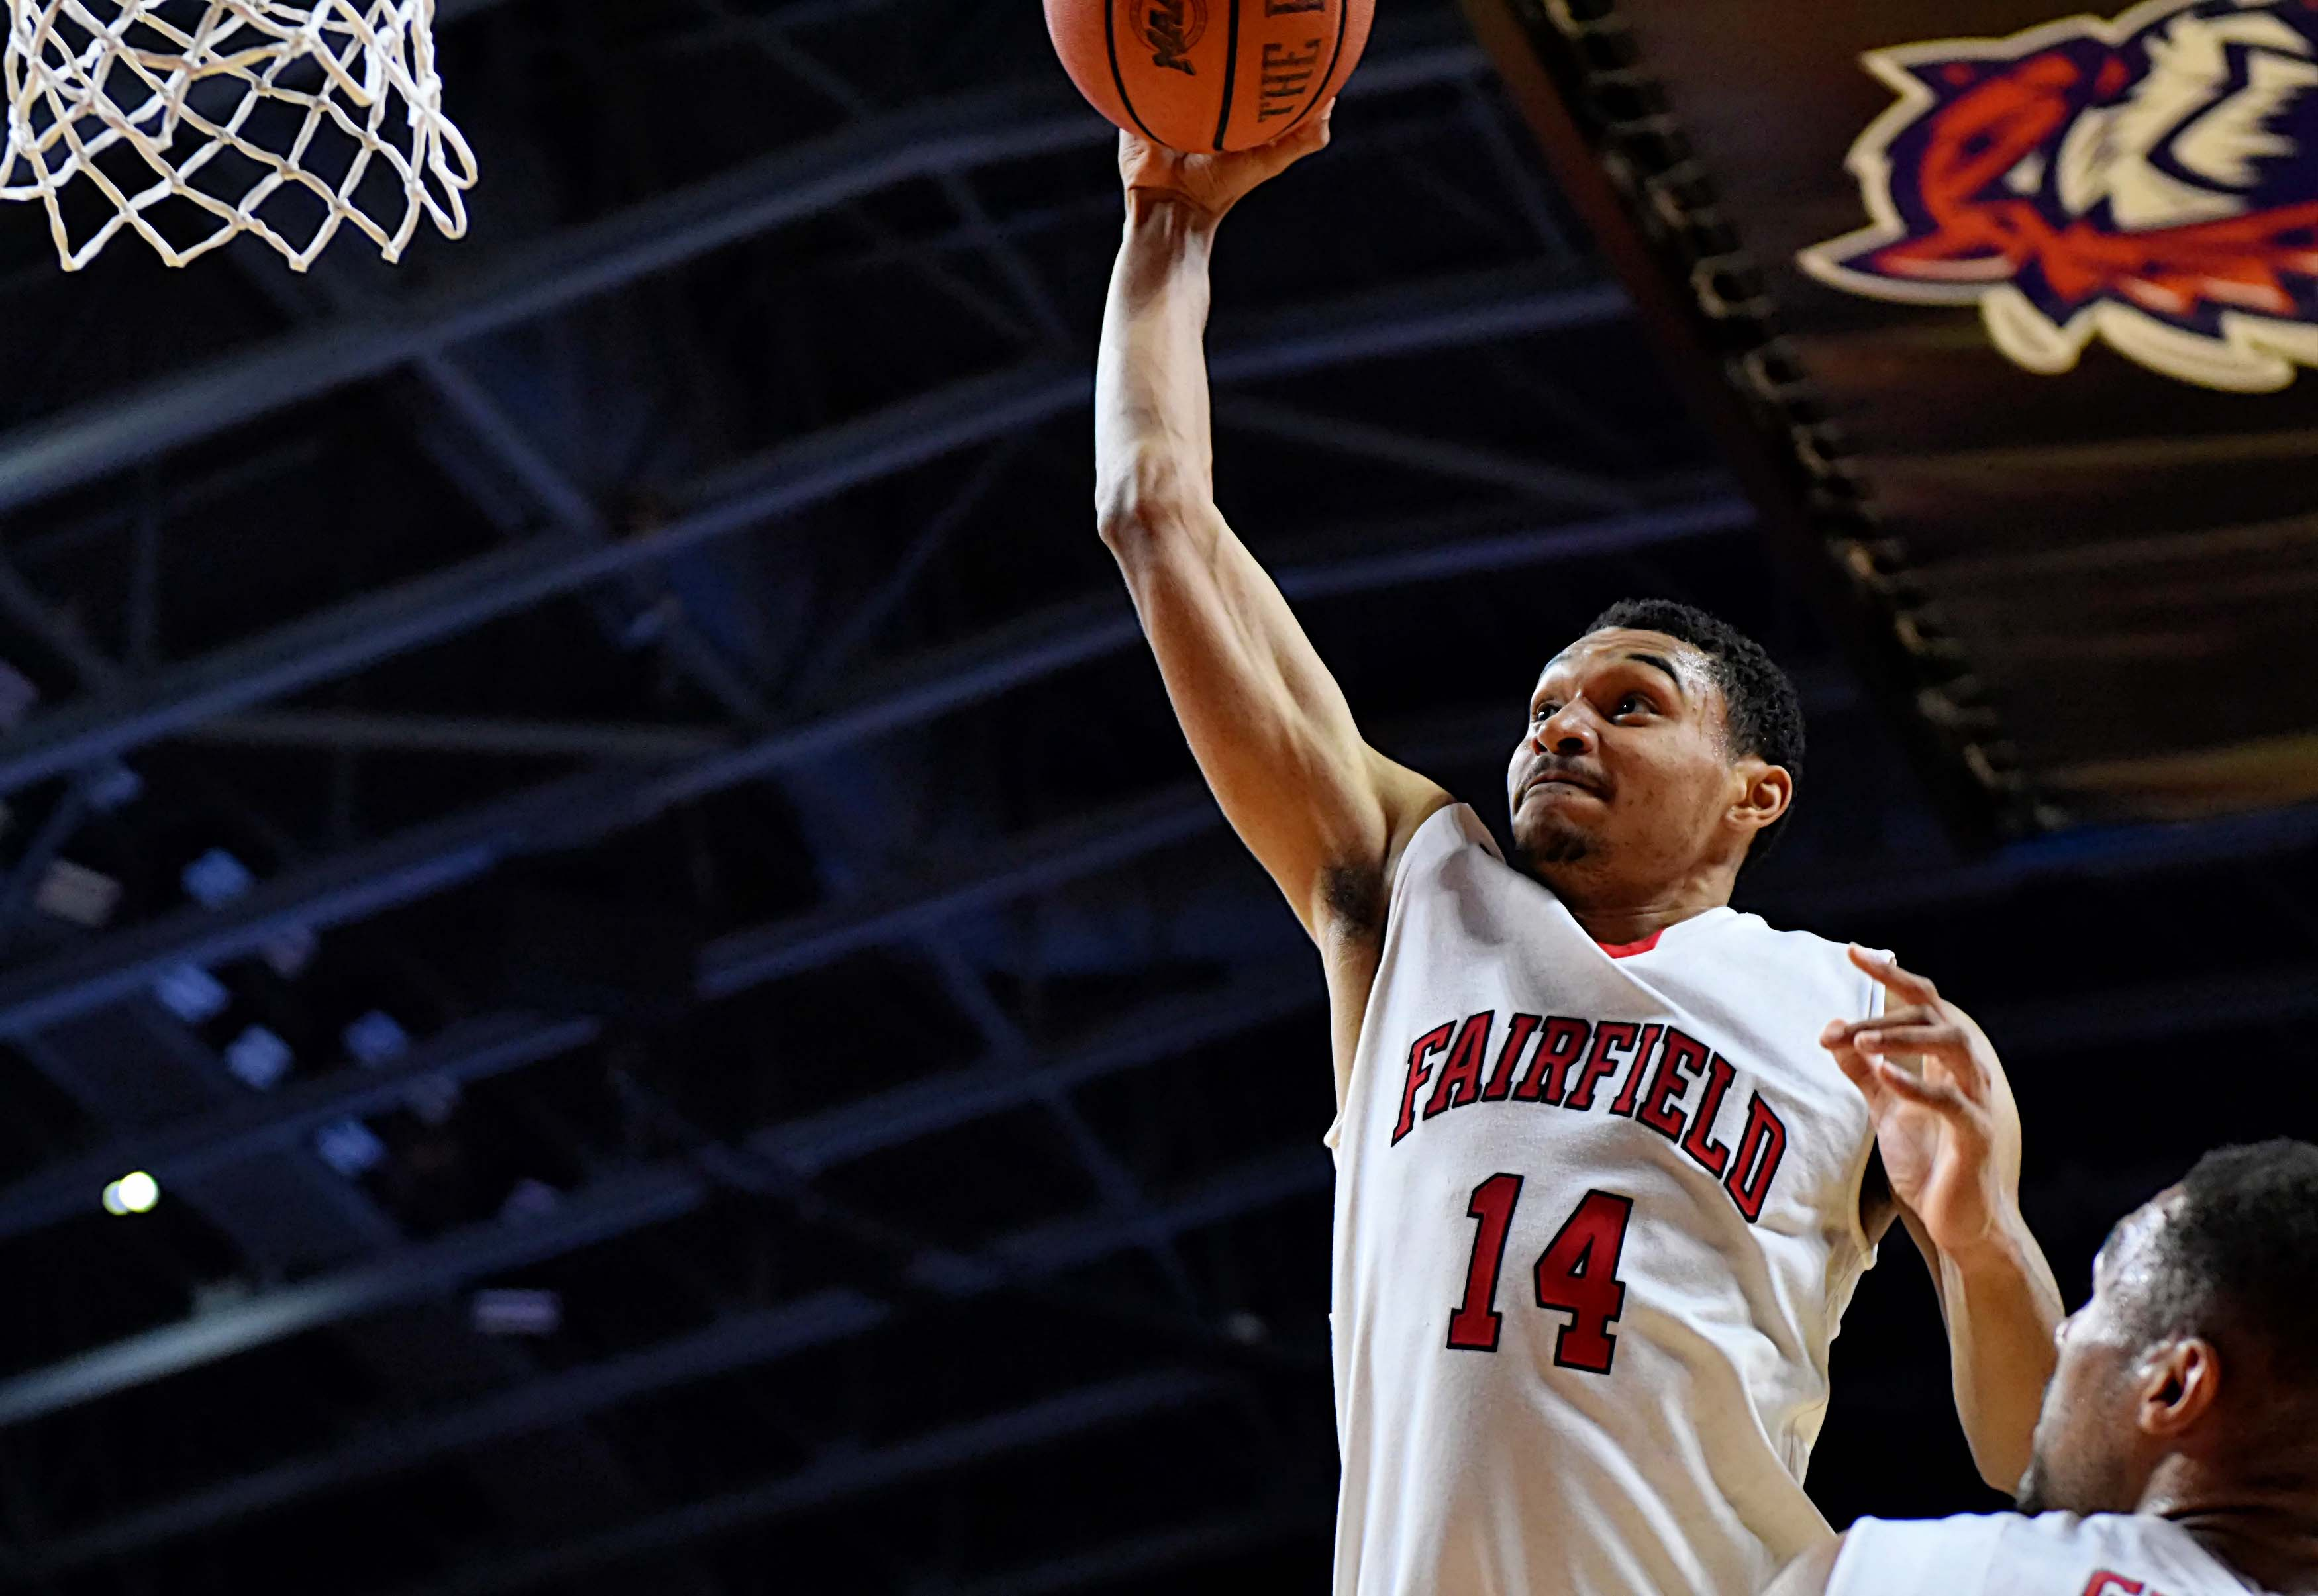 Fairfield s Marcus Gilbert Signs Pro Contract with FMC Ferentino